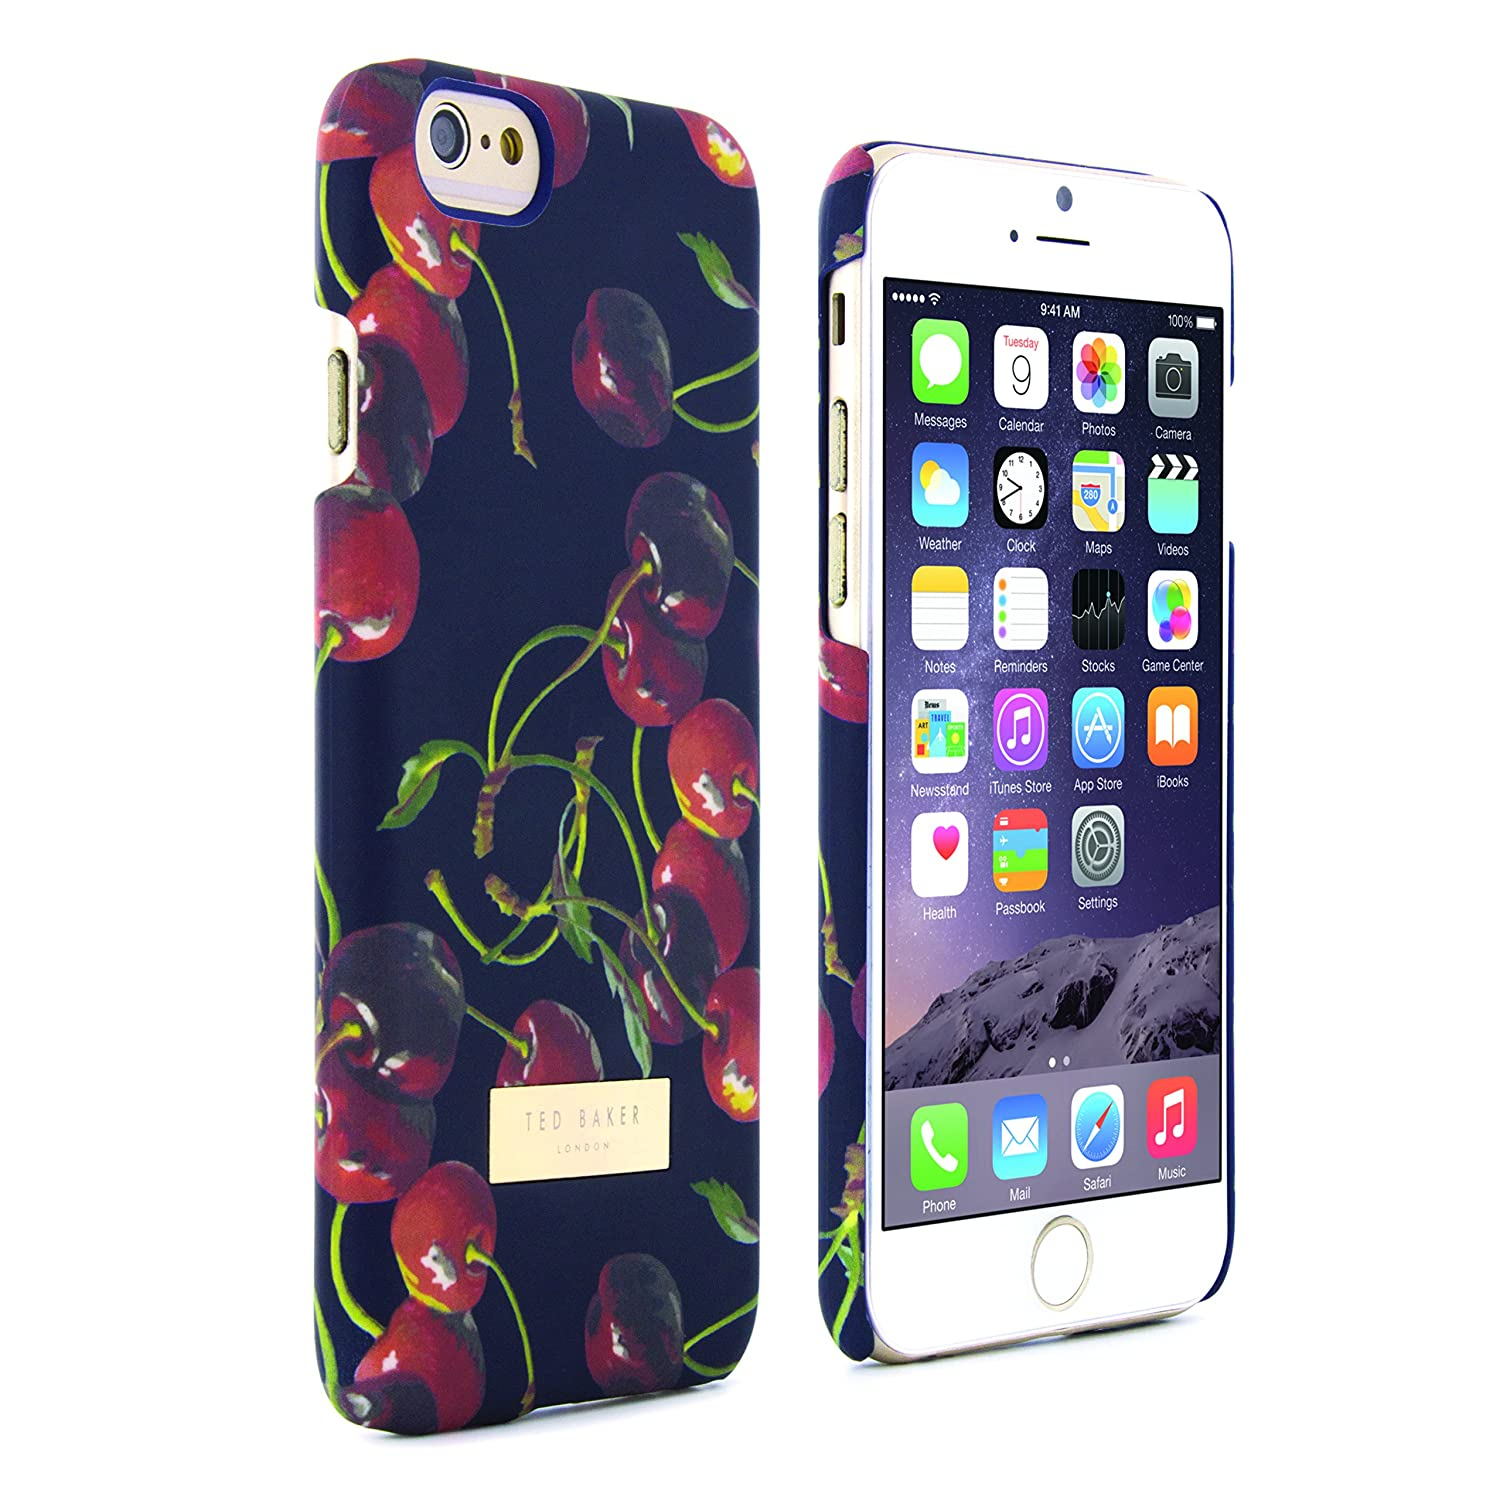 ted baker iphone 6 cases aw17